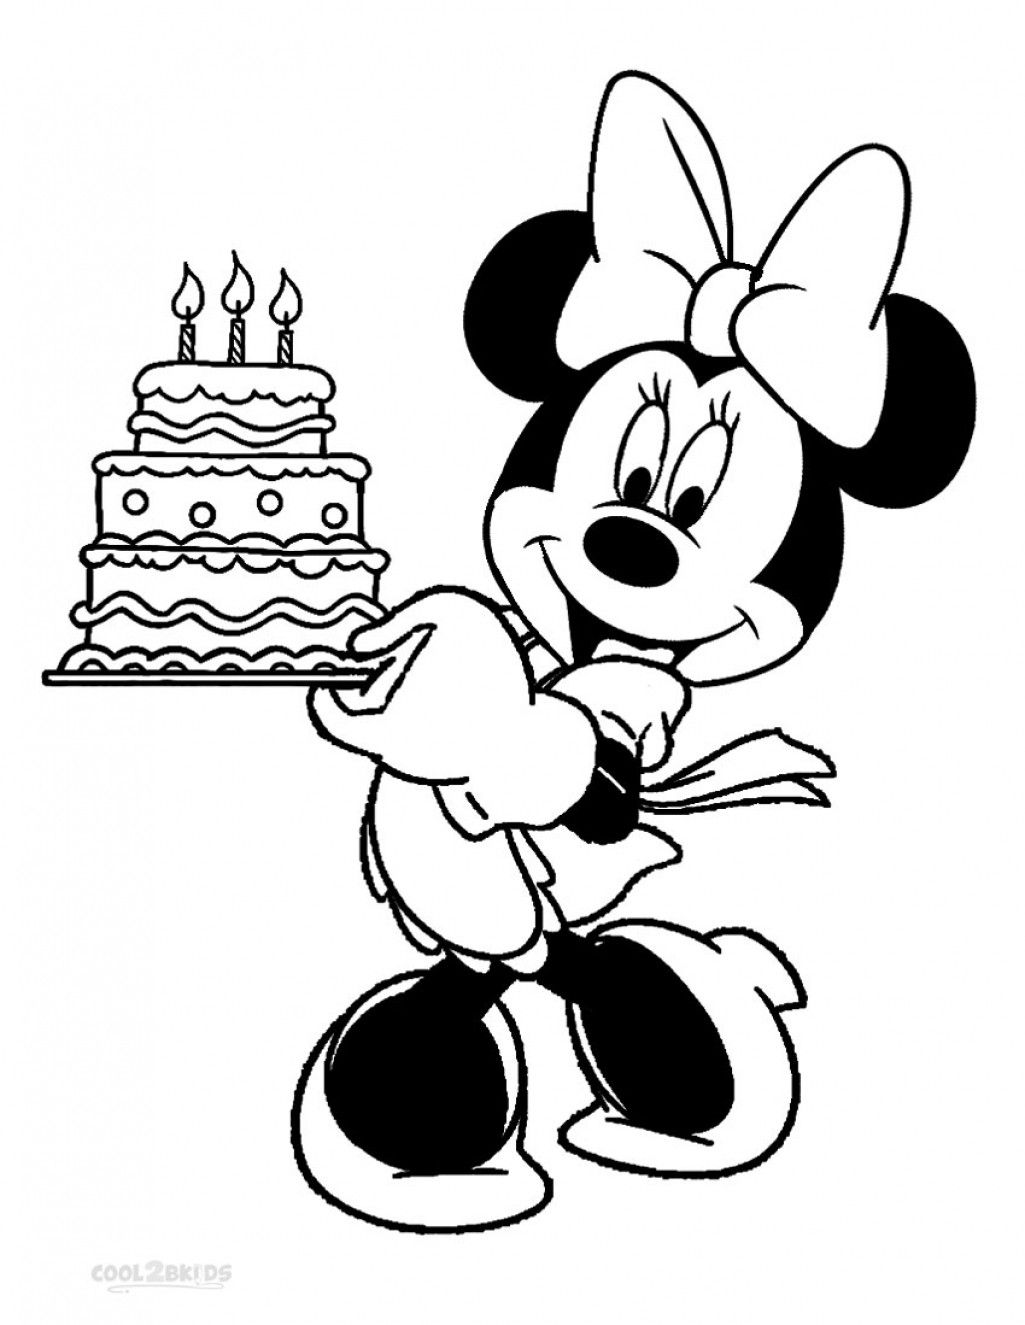 Baby Mickey Mouse Coloring Pages To Print Copy Free Disney Minnie Classy Printabl Mickey Mouse Coloring Pages Minnie Mouse Coloring Pages Disney Coloring Pages